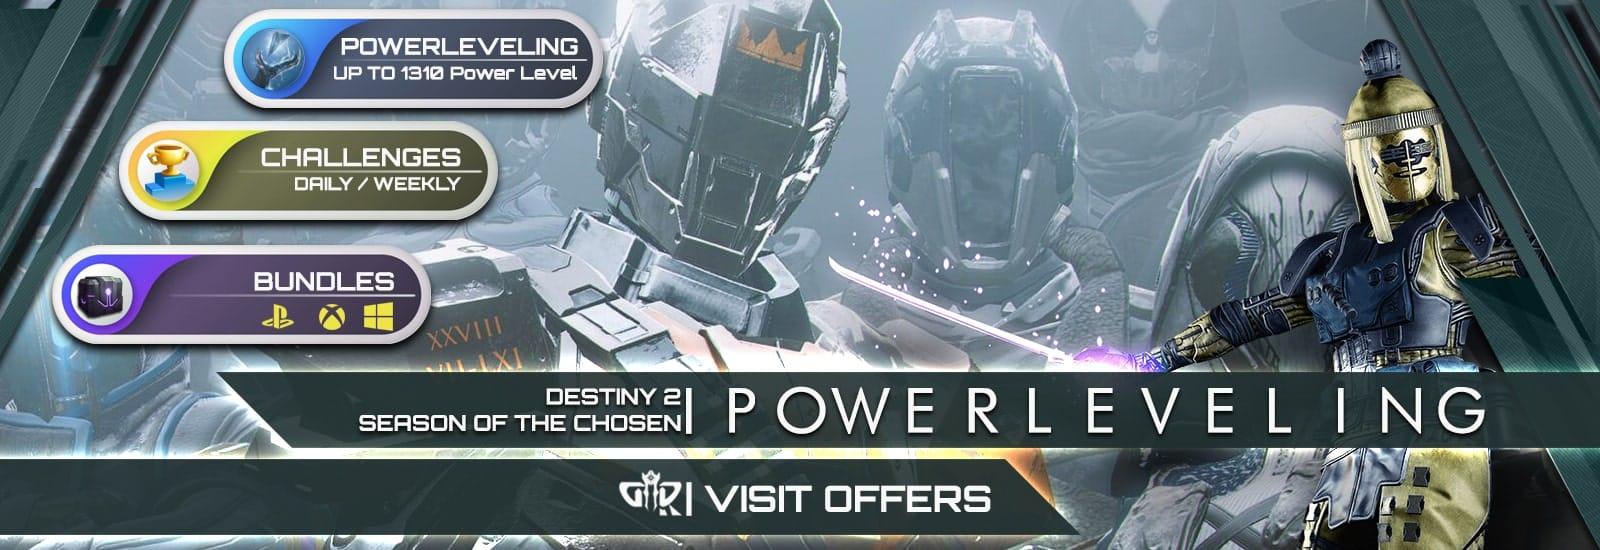 Destiny 2 Season of the Chosen 1310 Power Leveling Boost - Destiny2Raiding-min